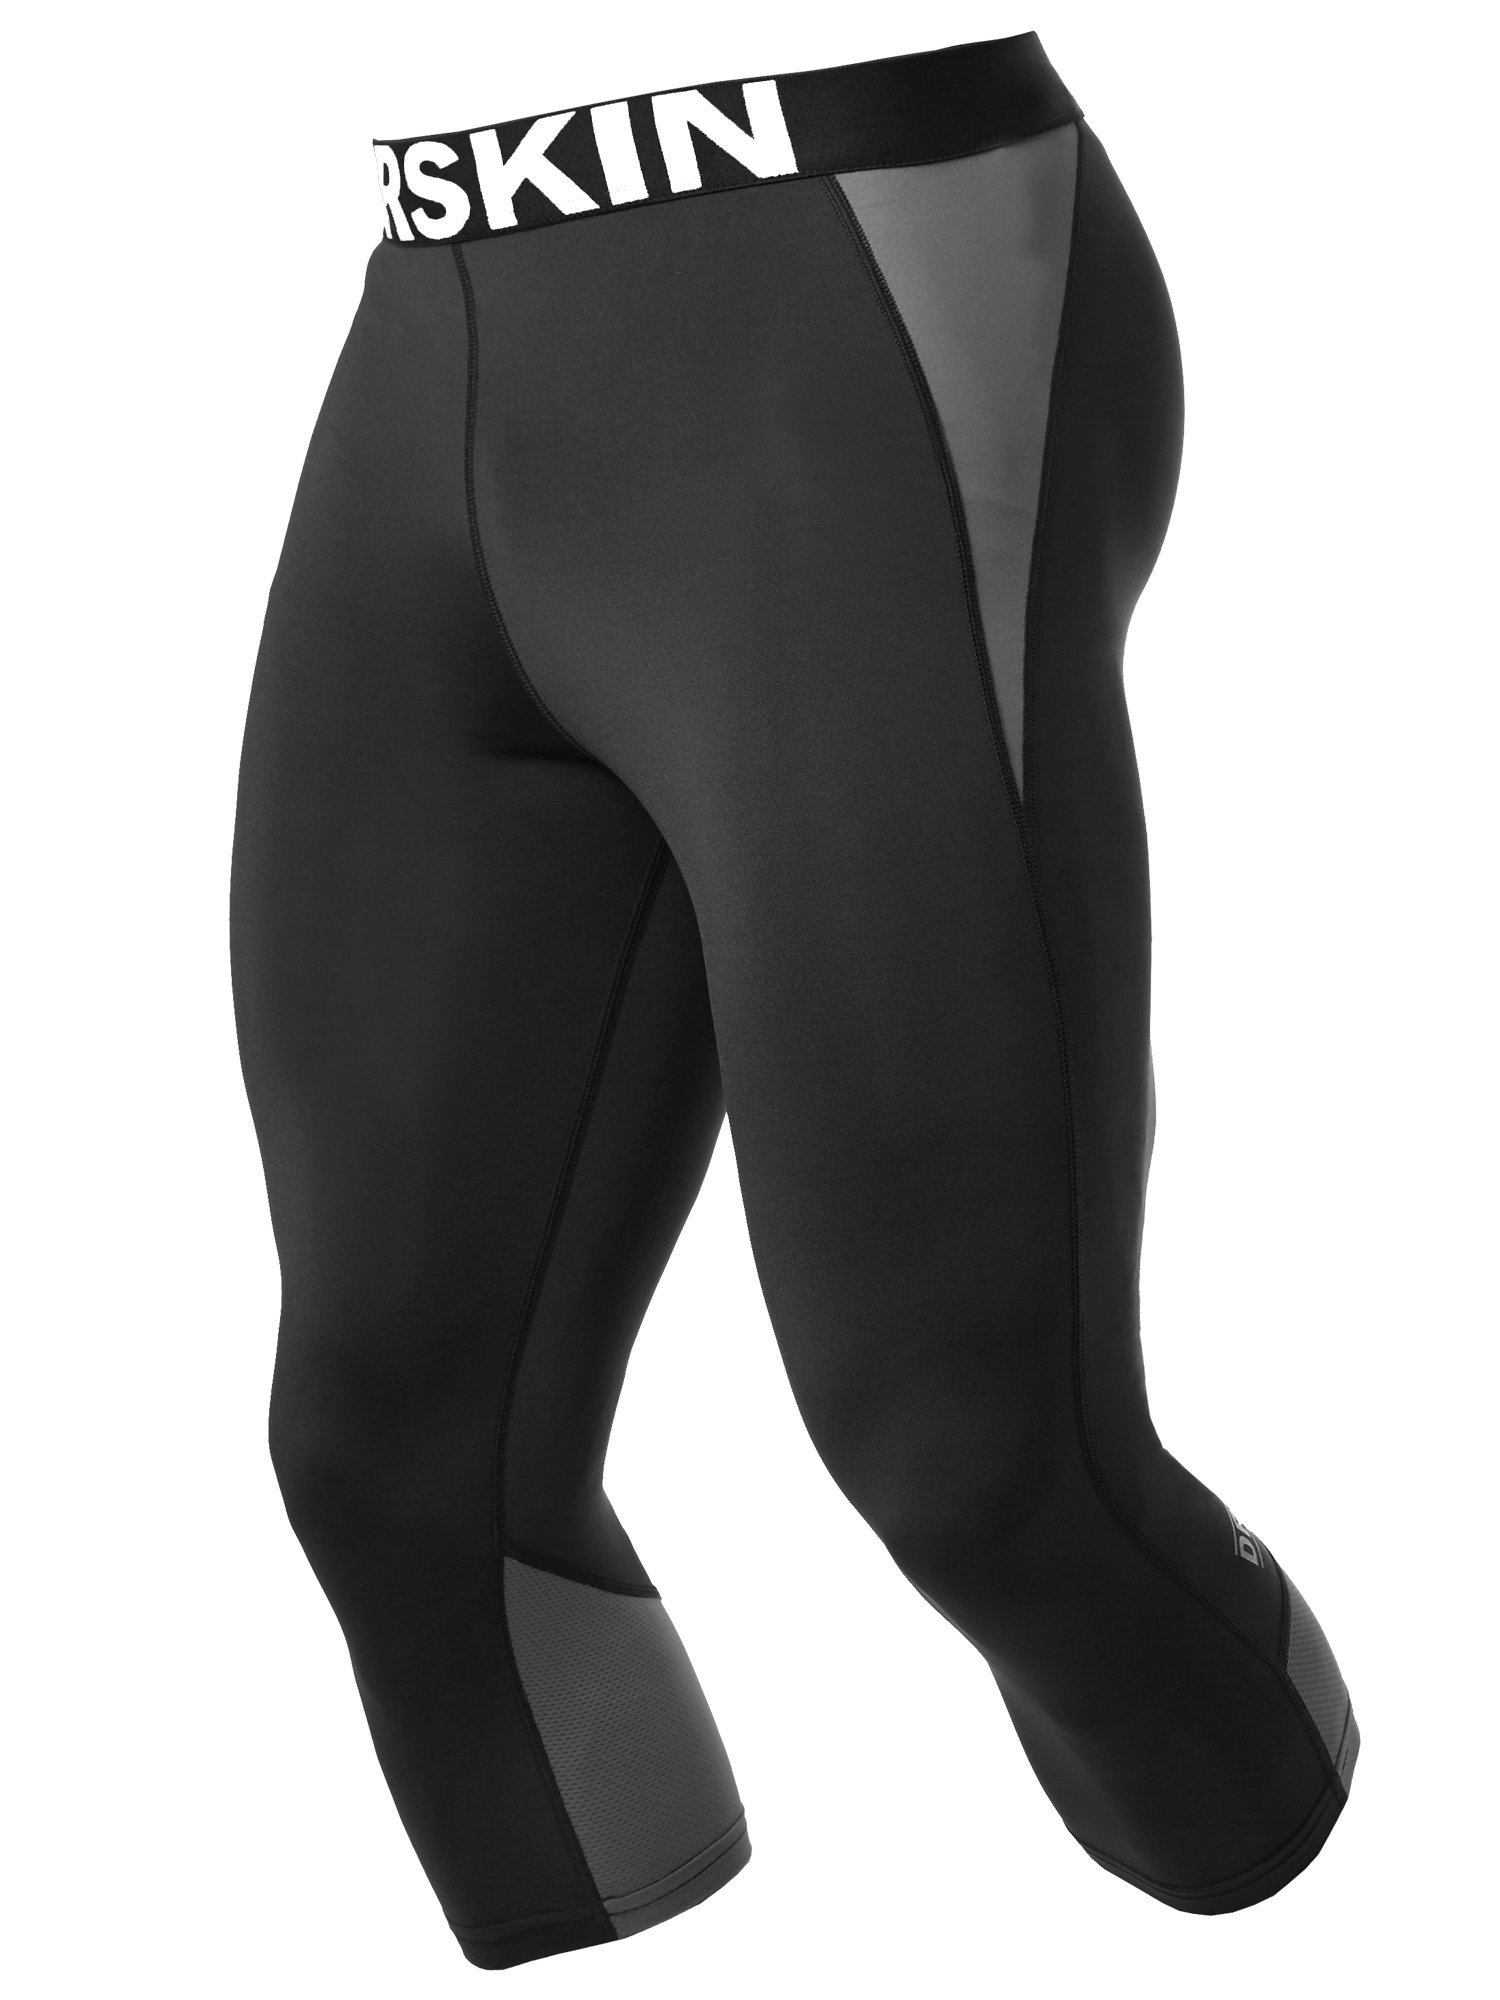 DRSKIN Men's 3/4 Compression Tight Pants Base Under Layer Running Shorts Warm Cool Dry (CA NP B-G817, S)